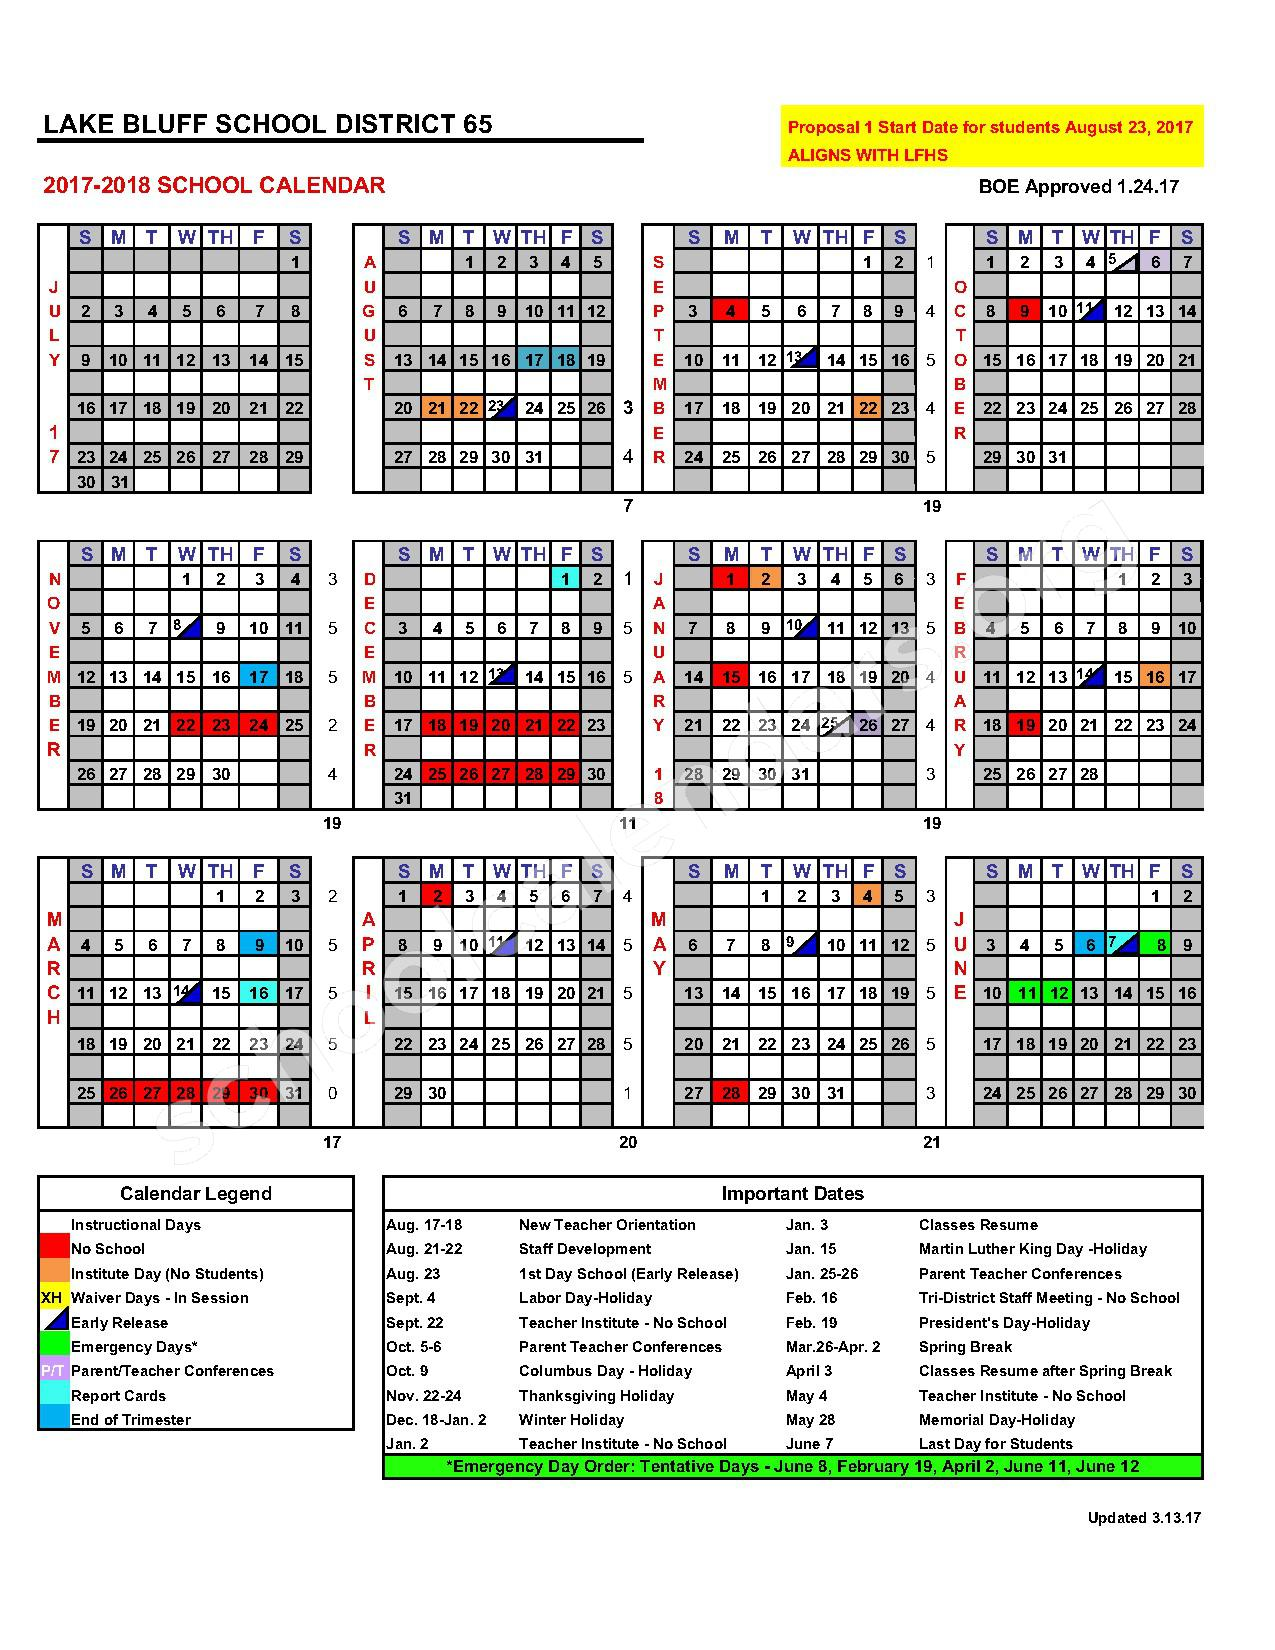 2017 - 2018 School Calendar – Lake Bluff Elementary School District 65 – page 1